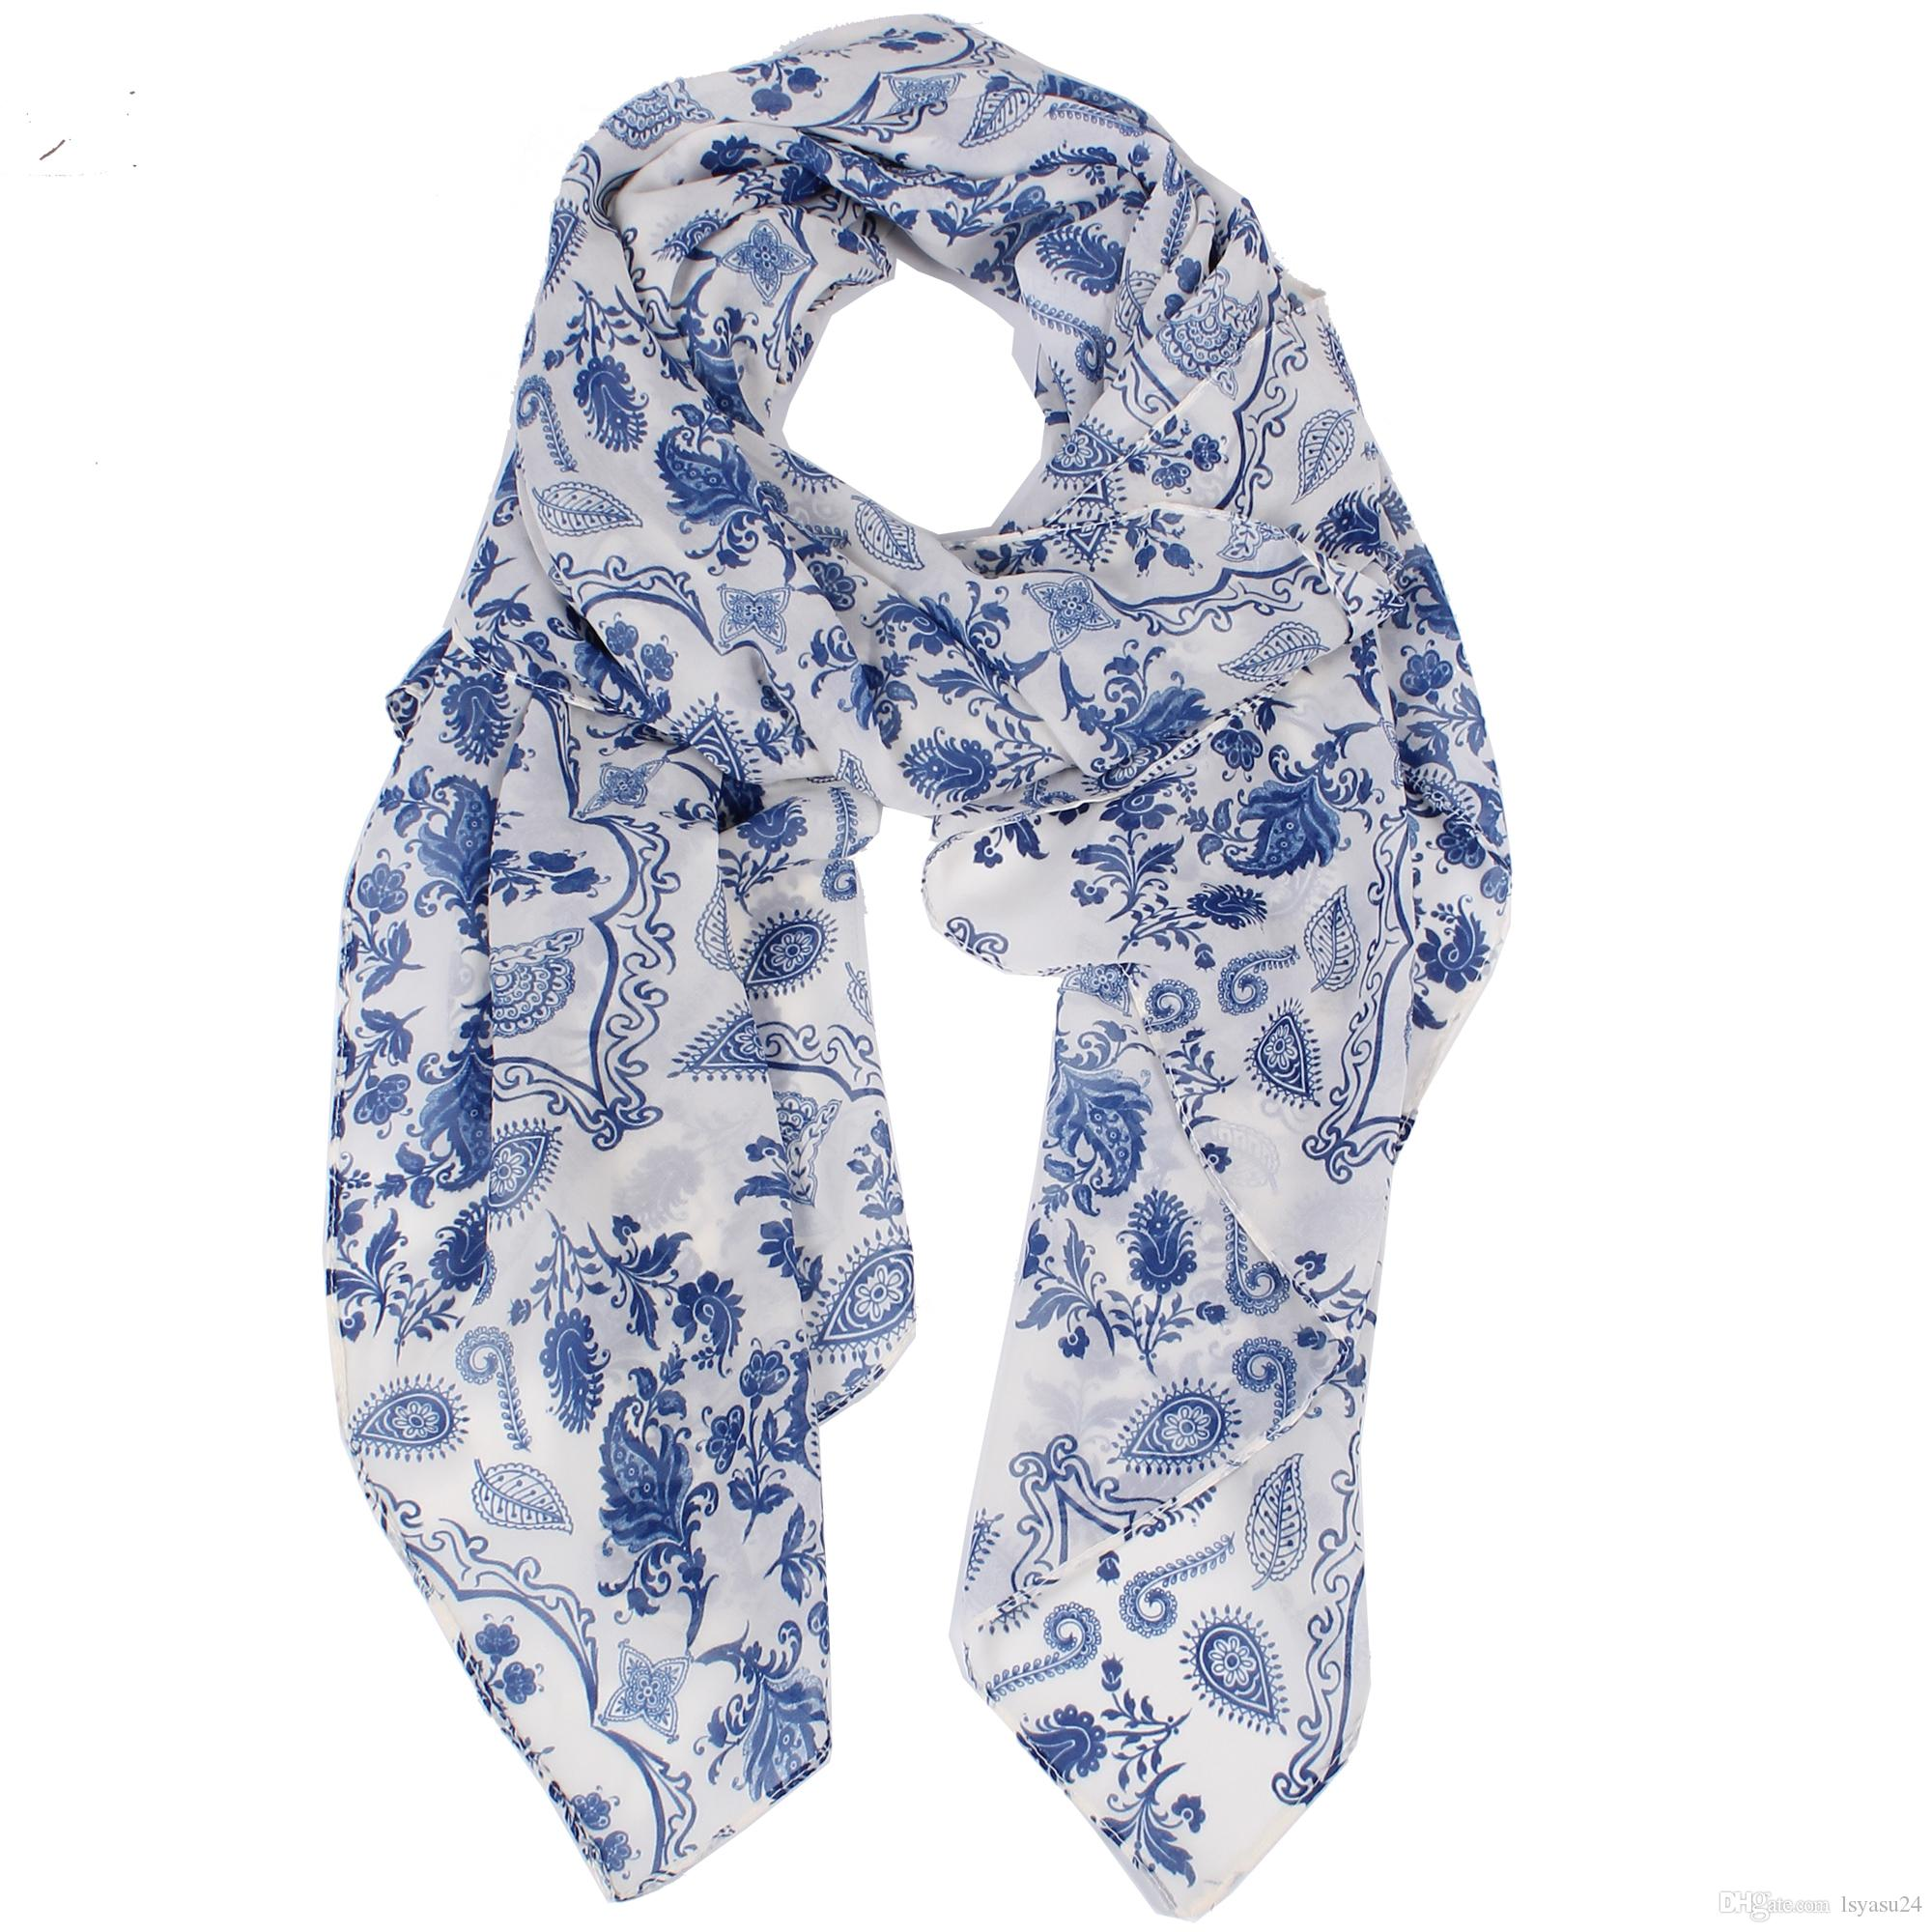 1fa9ec3de0e3d 2019 Lightweight New Fashion Women Scarfs White With Blue Paisley Flowers  Print Chiffon Lady Scarfs 180*70 Cm No.YS1512 Knitted Scarf Scarves  Wholesale From ...